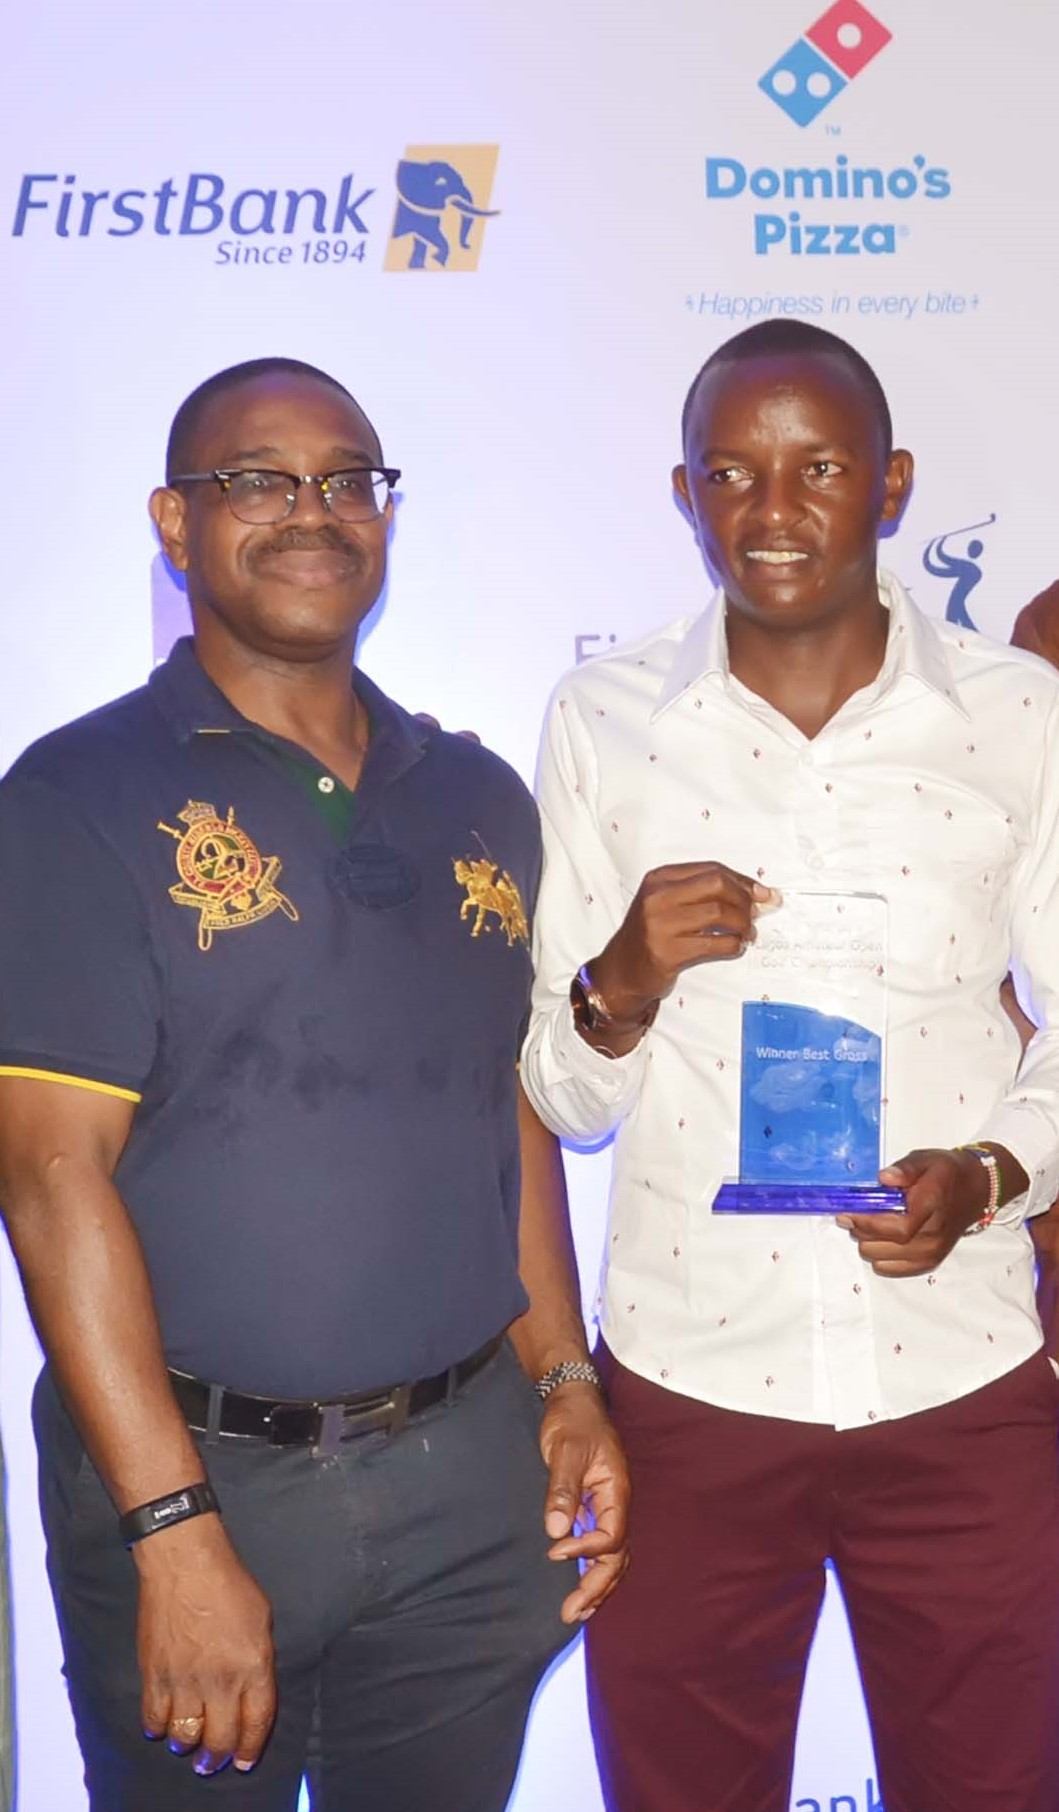 FirstBank Lagos Amateur Open Golf Championship Achieves Global Recognition, Gets Listed In The Wagr